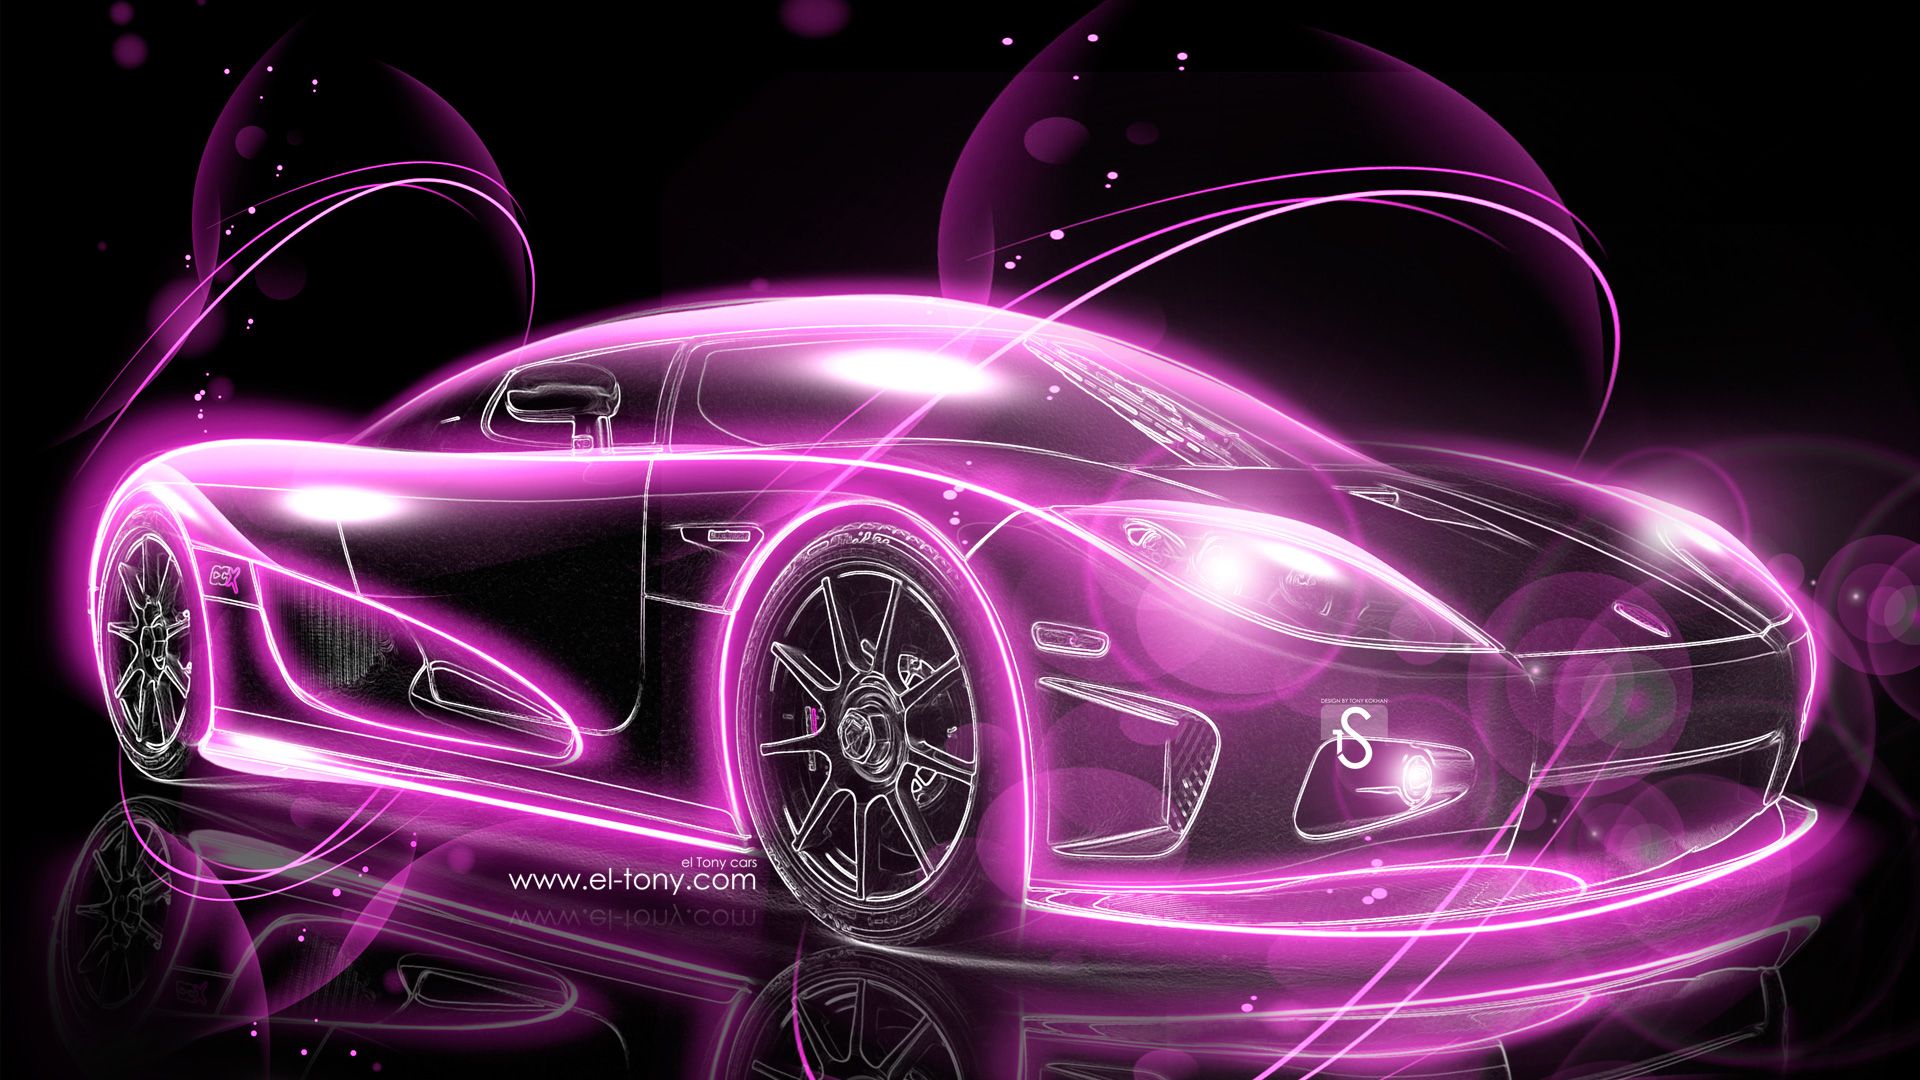 Koenigsegg CCX Super Abstract Car 2013 el Tony 1920x1080